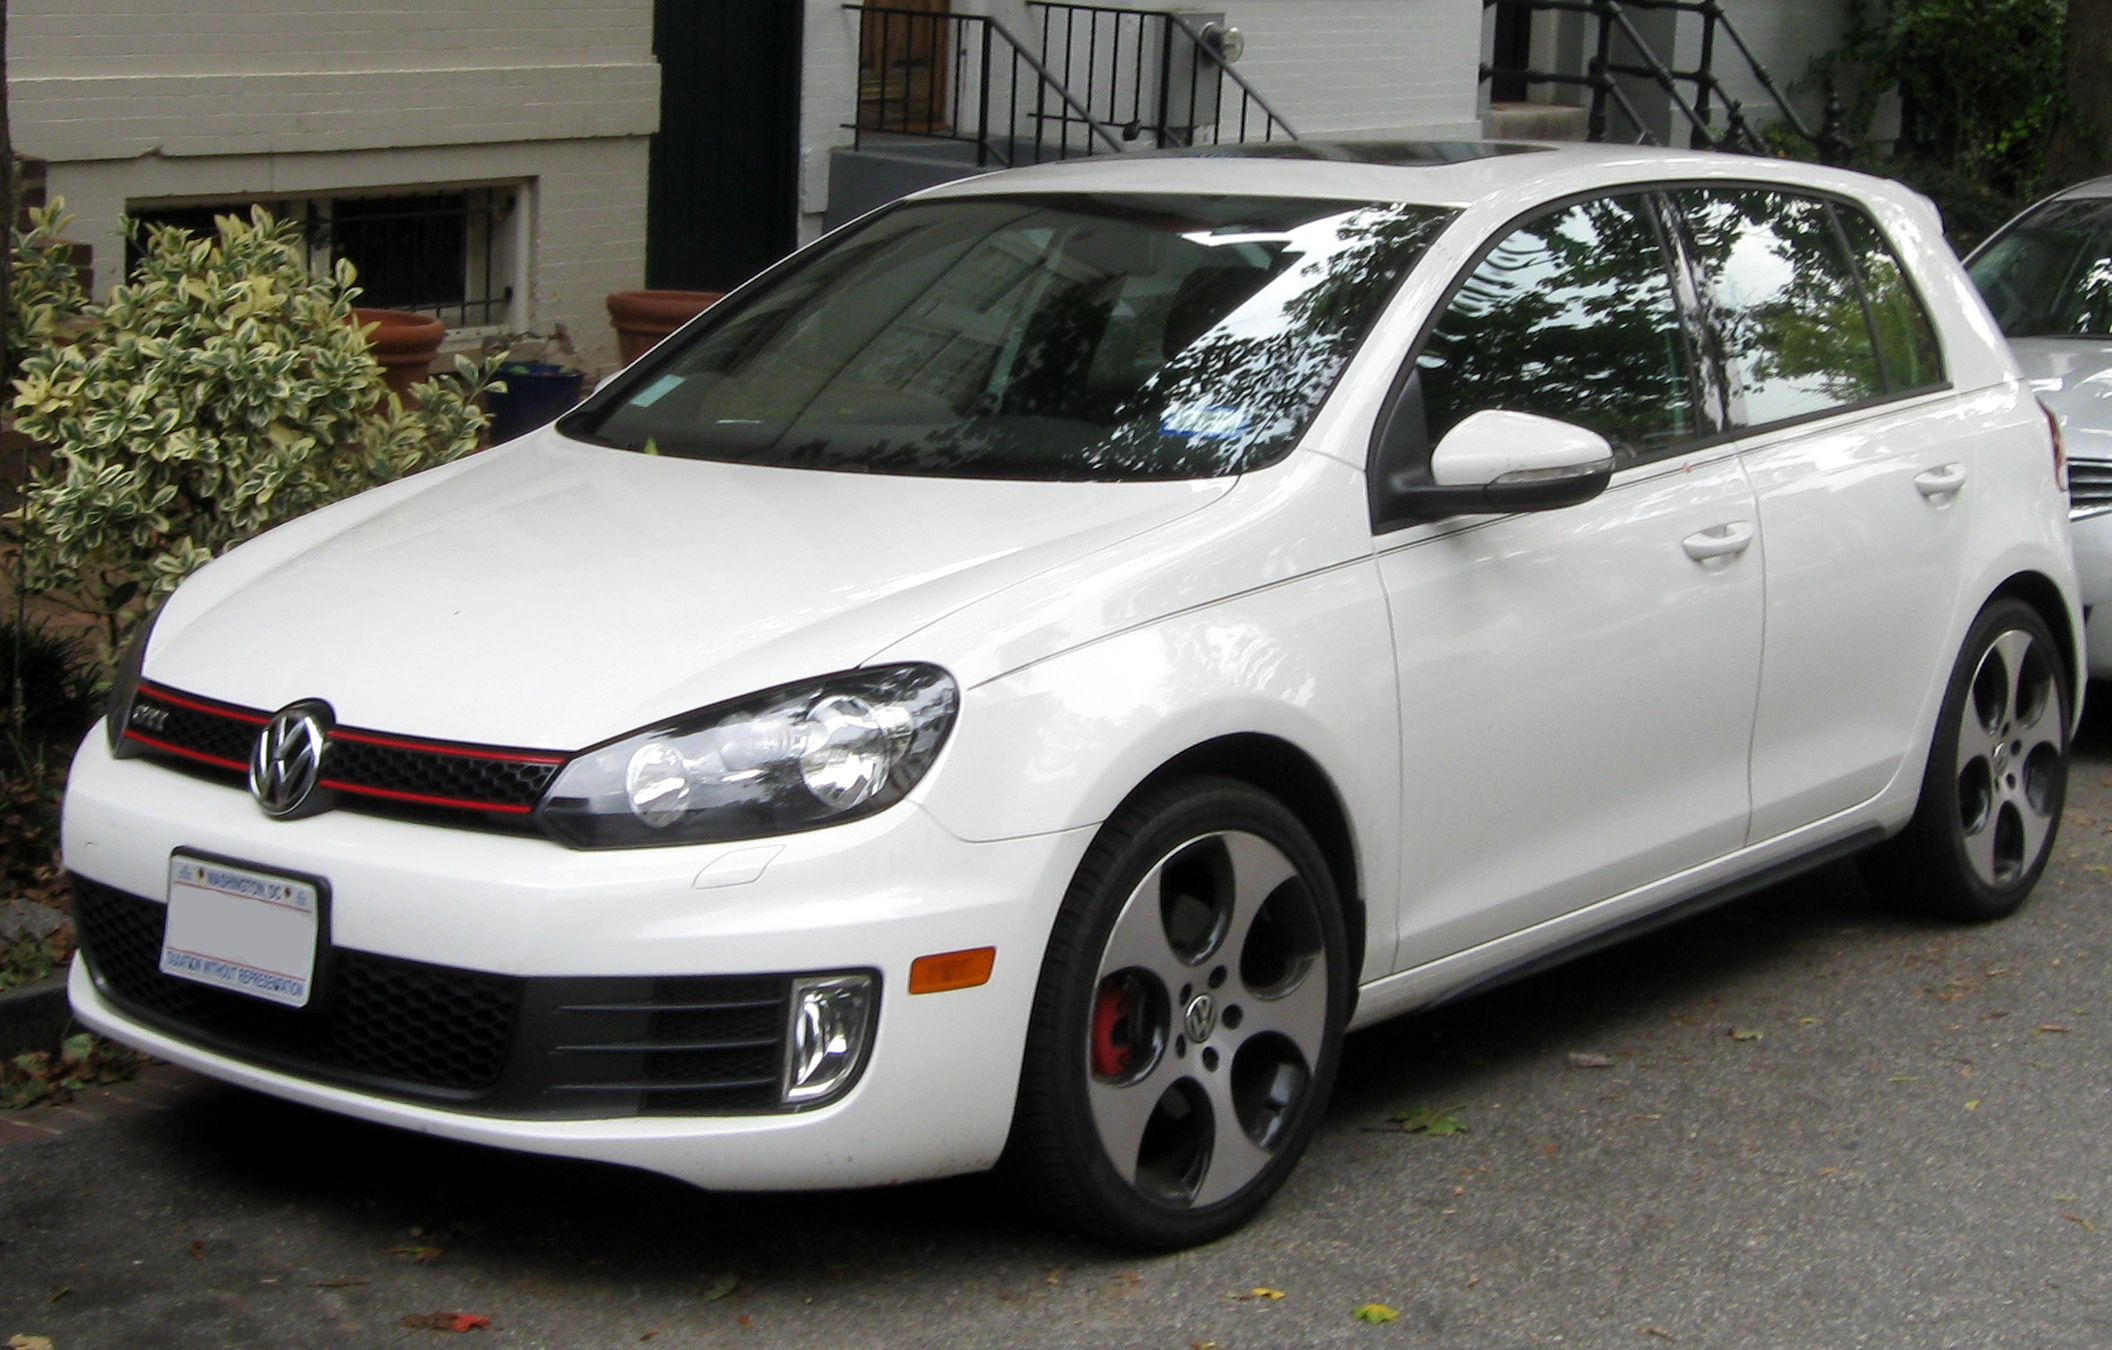 Volkswagen GTI 5 door Free Download Image Of